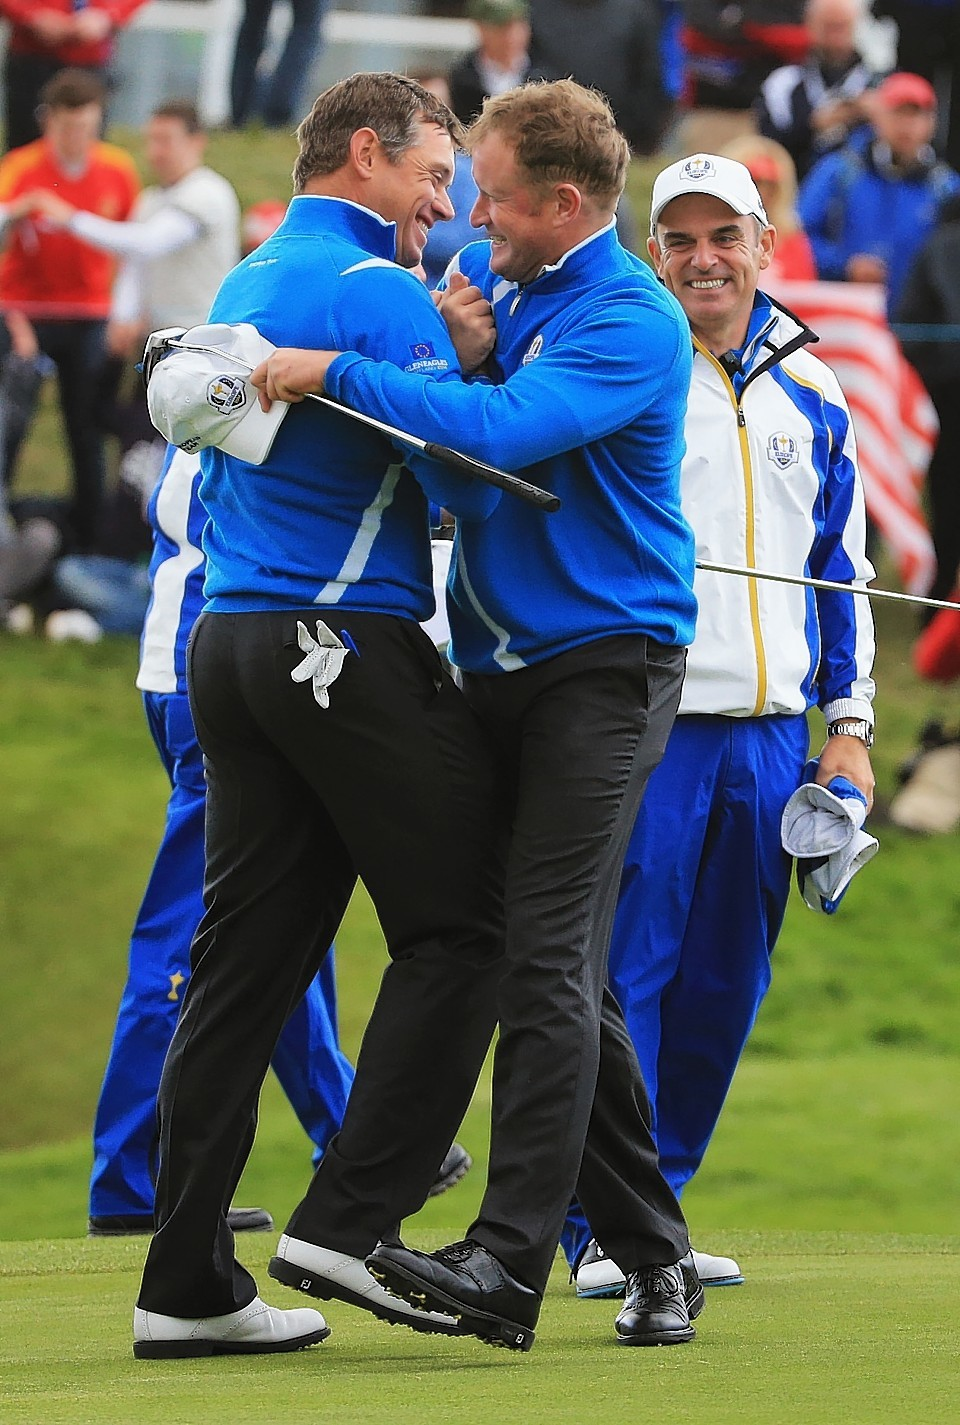 Westwood and Donaldson were rested this morning but produced a brilliant performance this afternoon